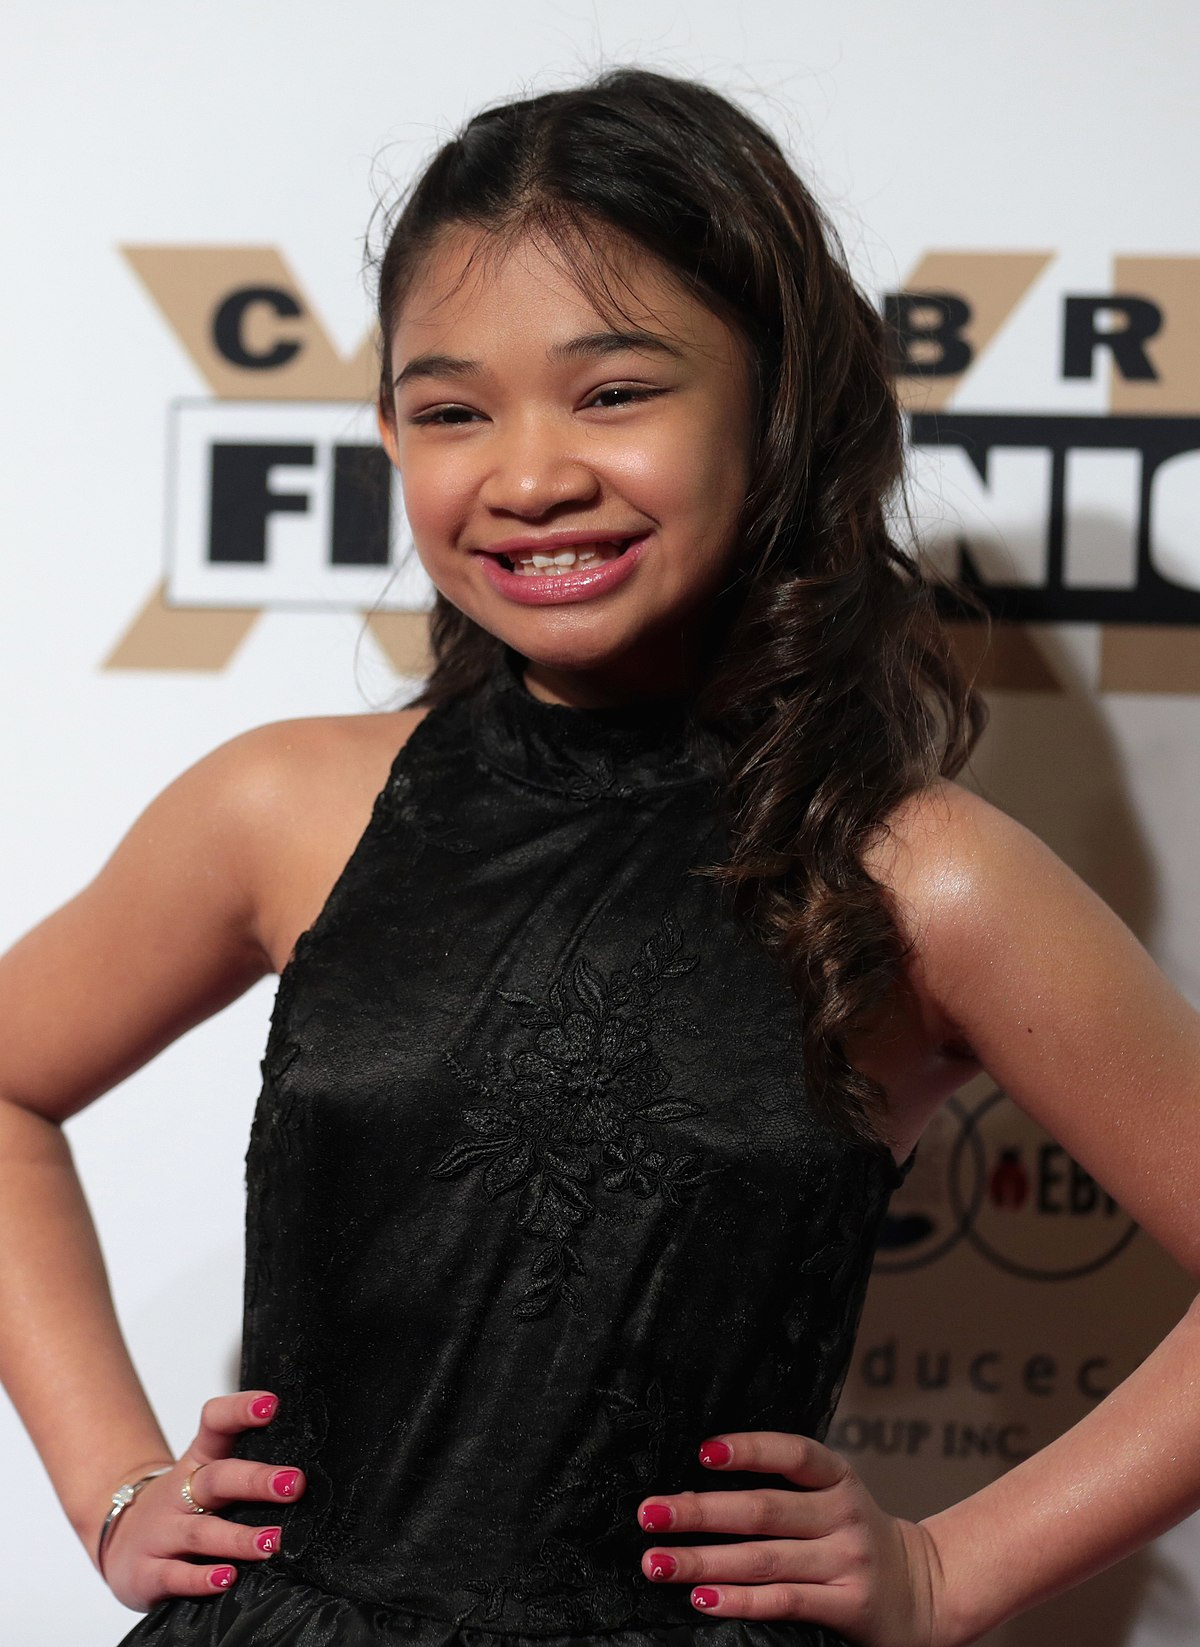 Angelica Hale Bio Age Height Career Net Worth Parents Trivia Facts Life Ethnicity Religion Wiki